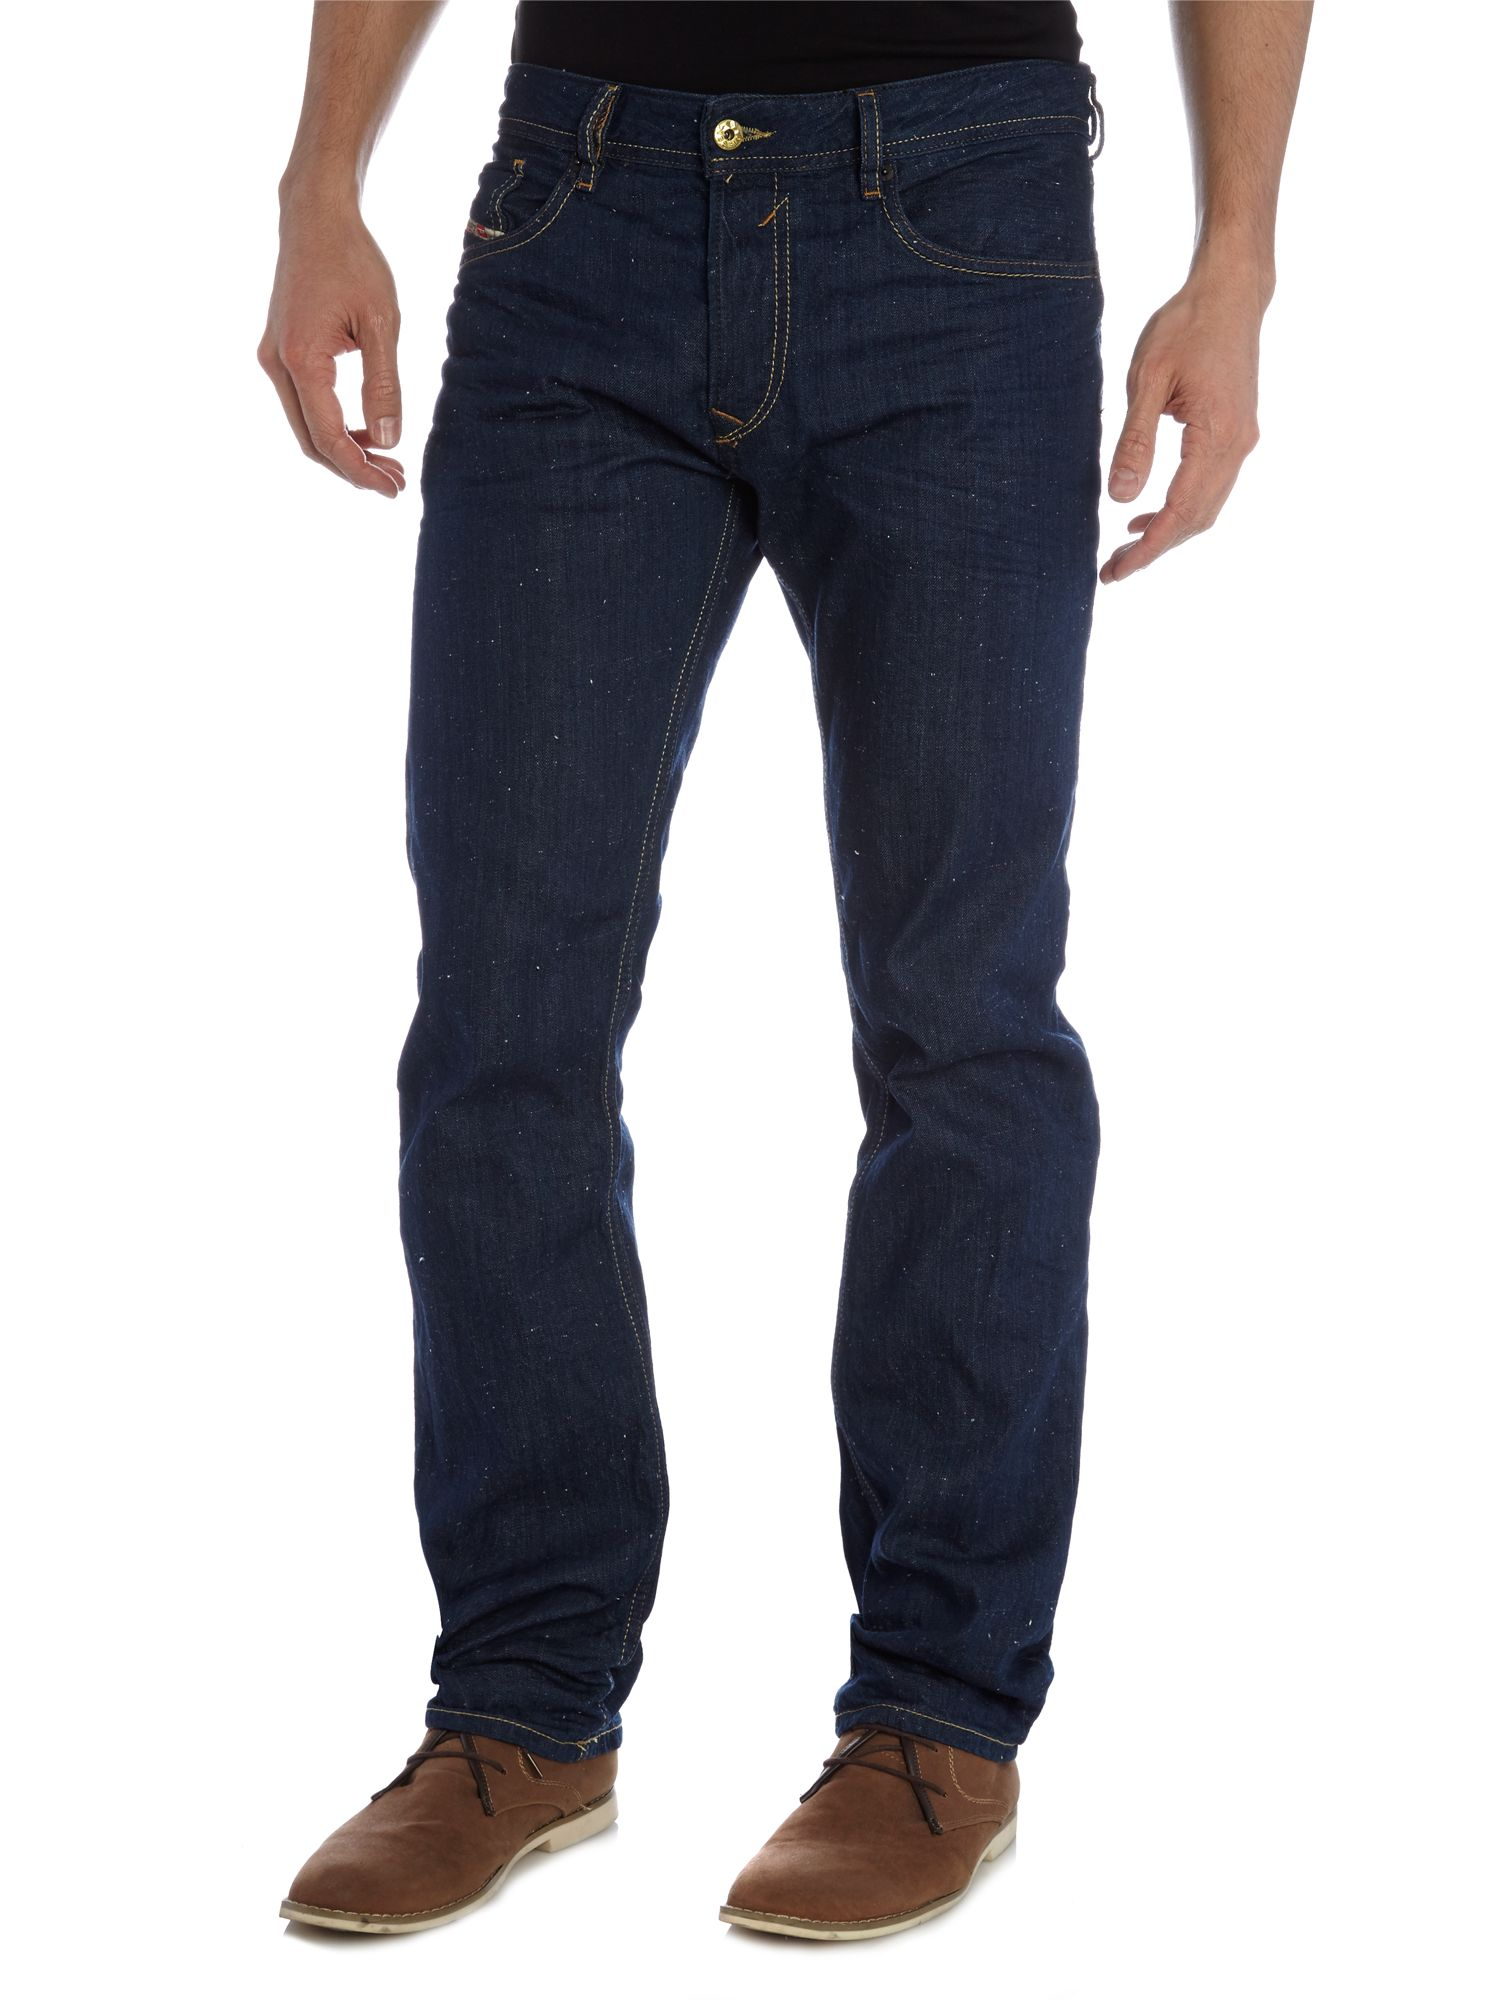 Waykee 0829H regular straight fit jean